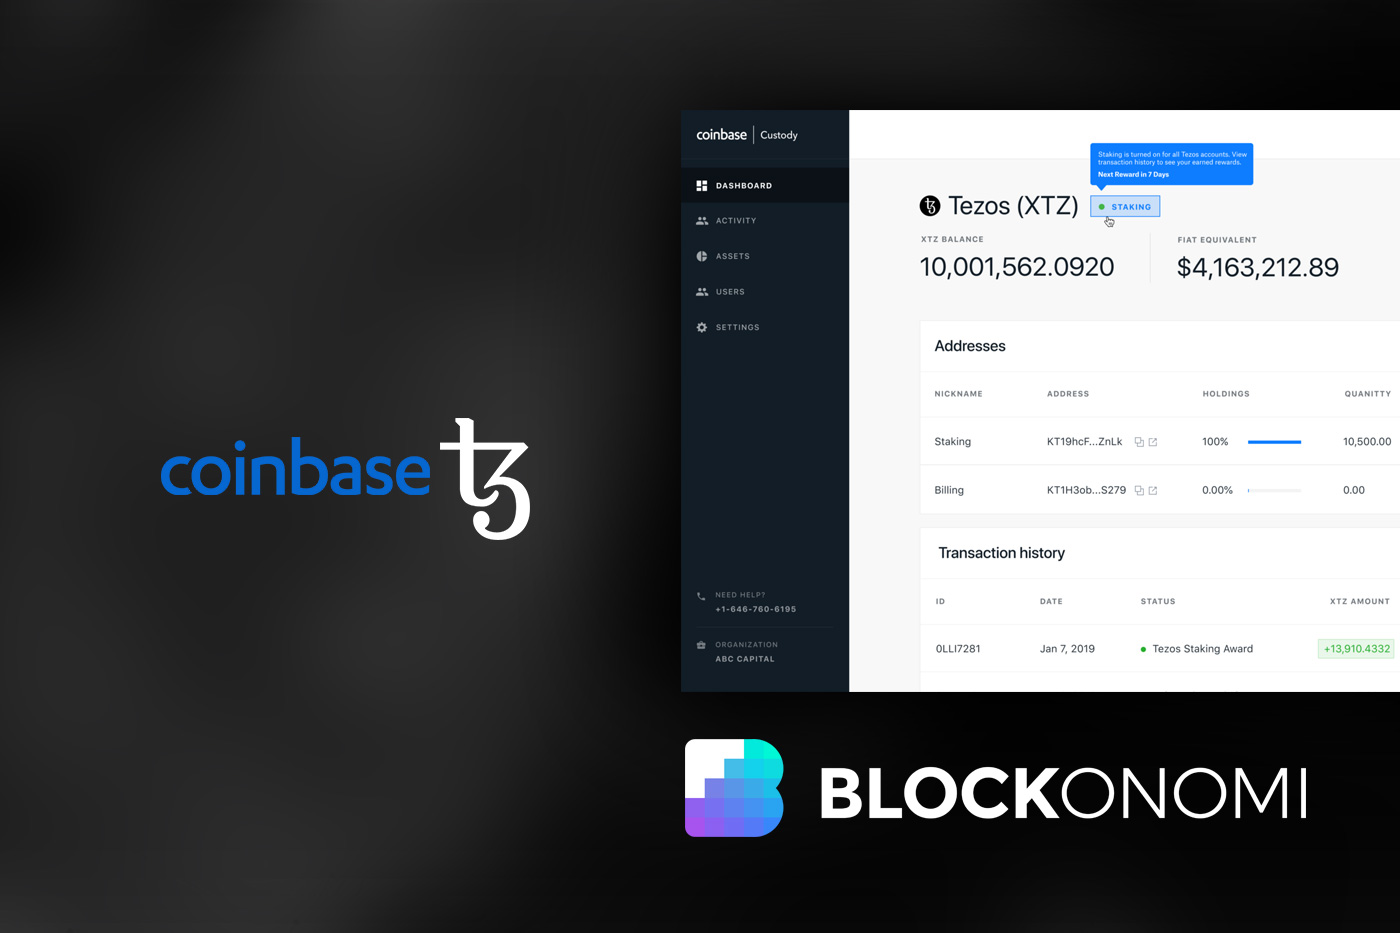 Coinbase Custody Activates Staking Support for Tezos (XTZ)